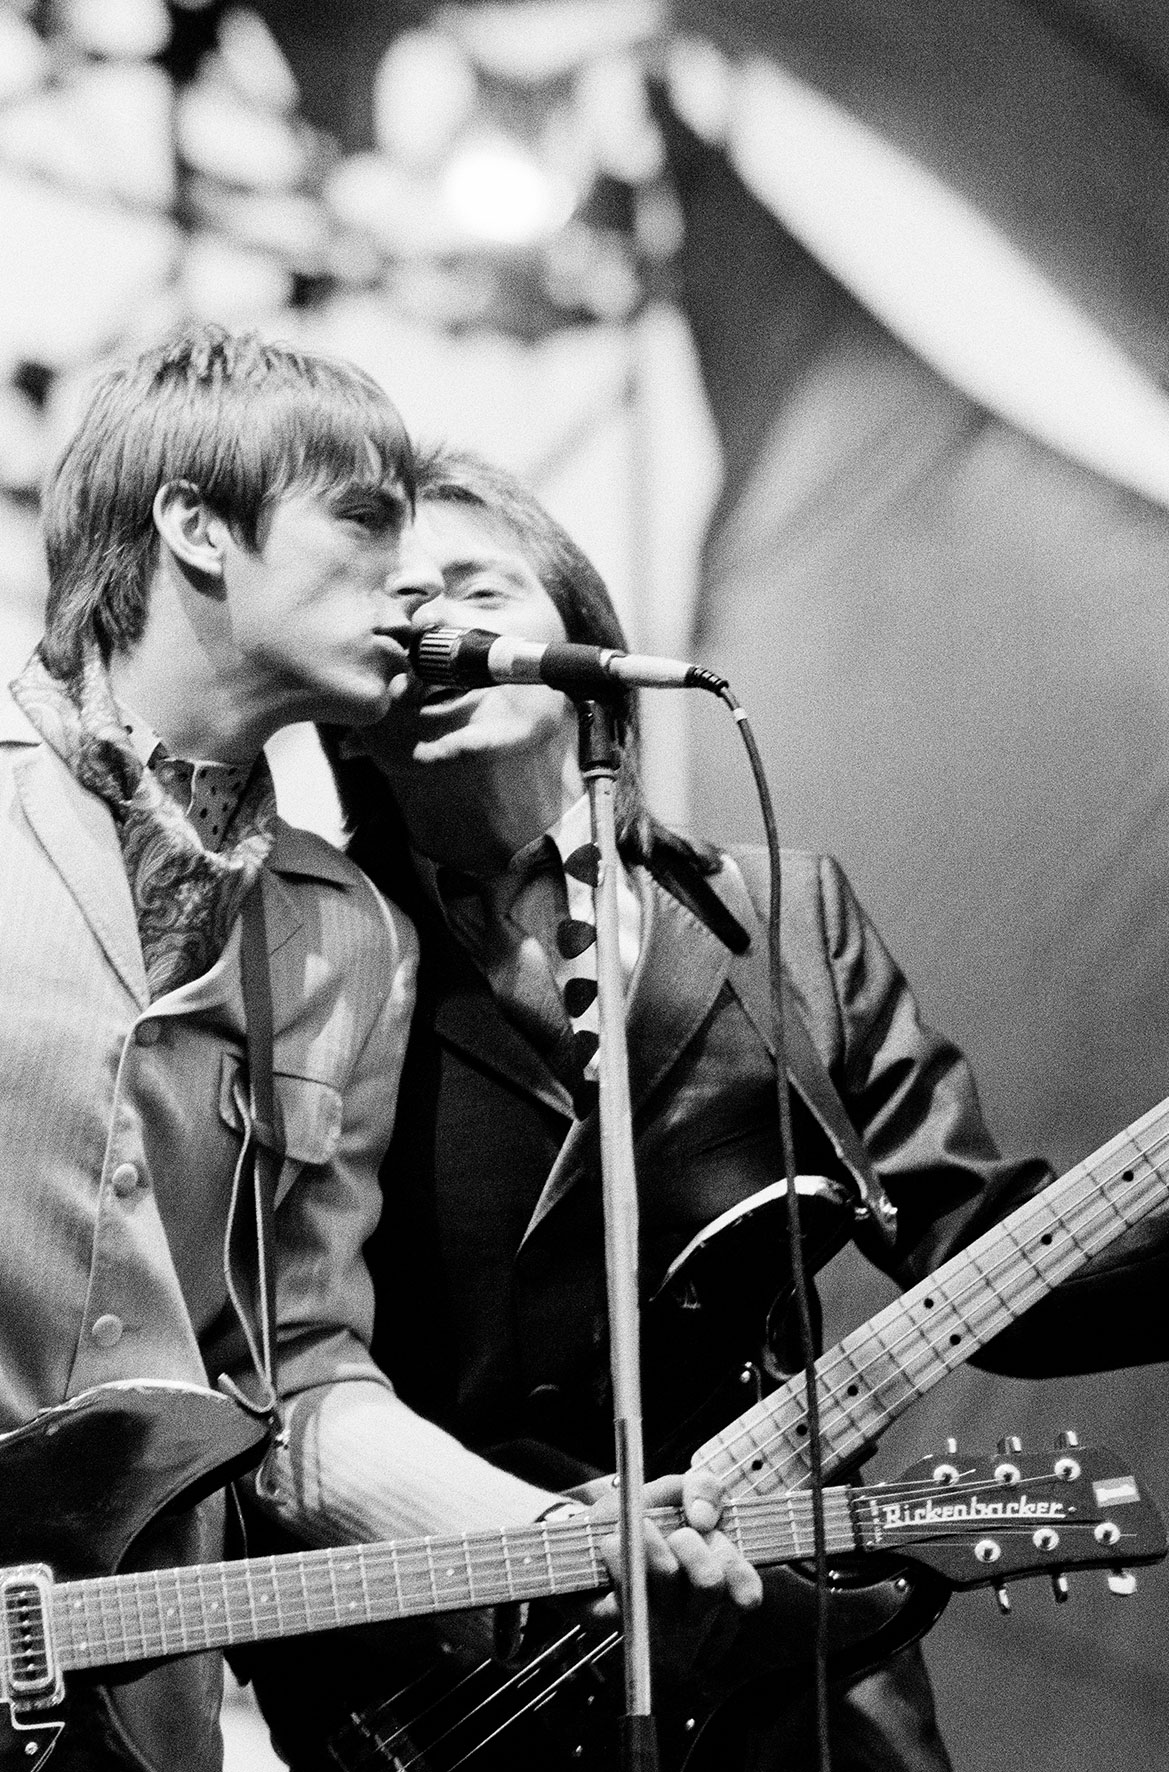 Image of Paul Weller / The Jam by Harry Papadopoulos